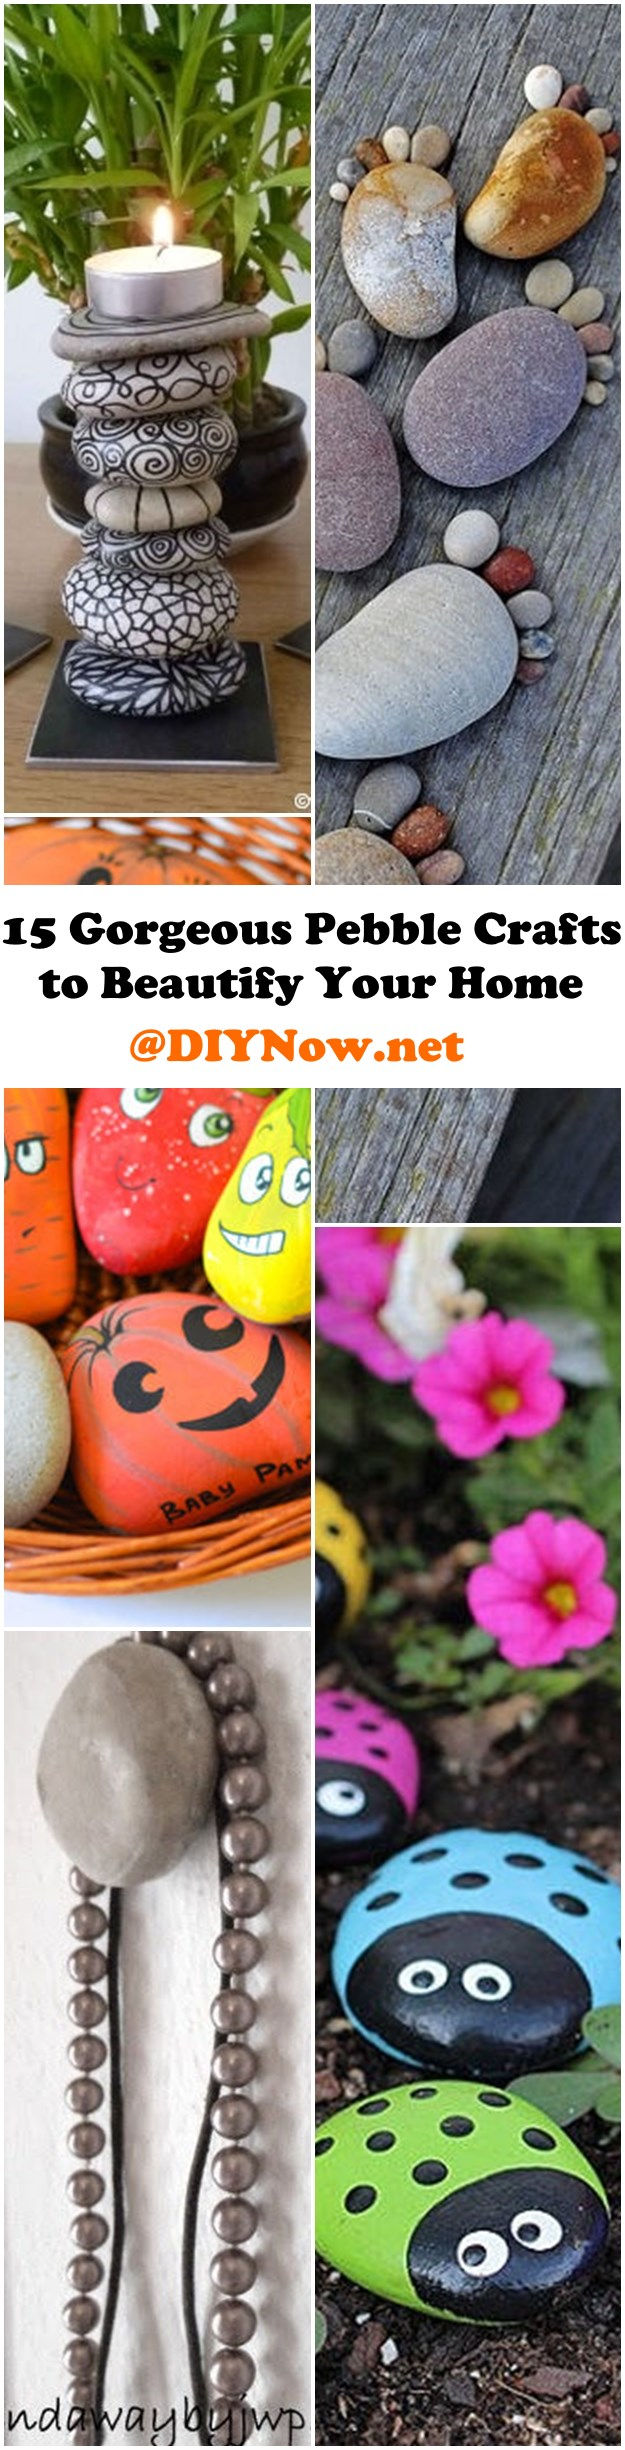 15 Gorgeous Pebble Crafts to Beautify Your Home